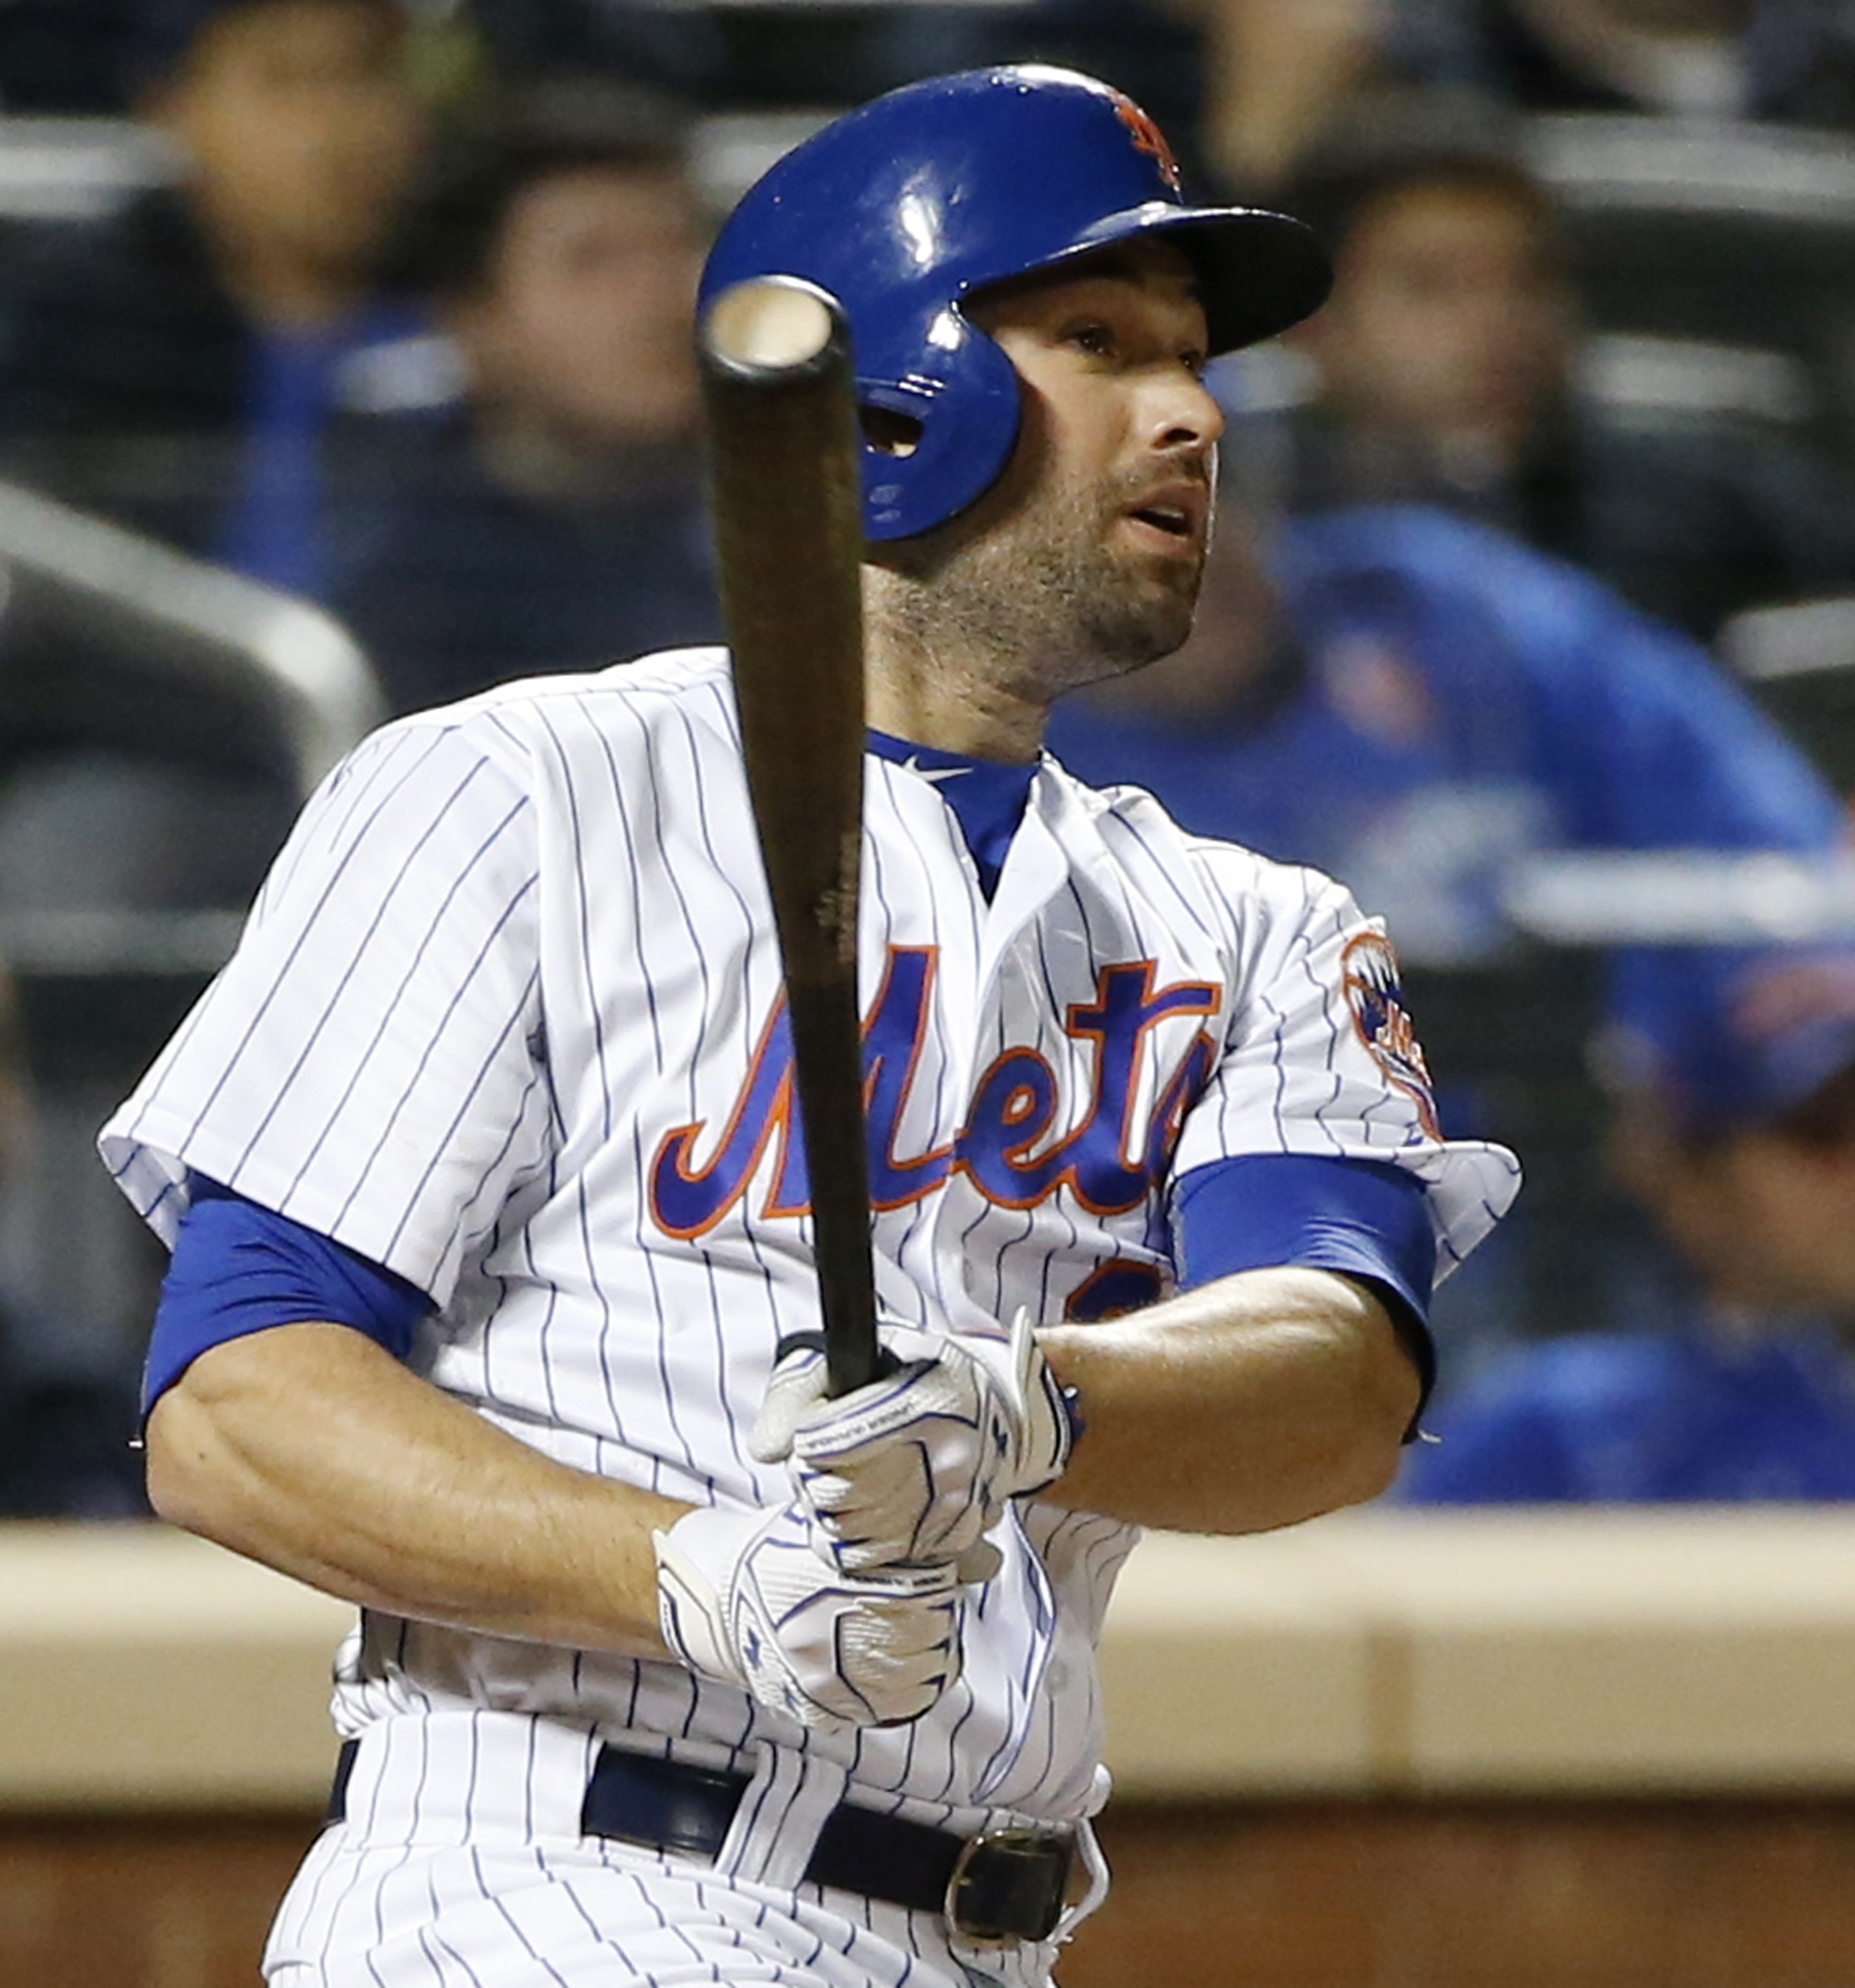 New York Mets Neil Walker (20) watches his seventh-inning, two-run home run in a baseball game against the Cincinnati Reds, Monday, April 25, 2016, in New York. (AP Photo/Kathy Willens)